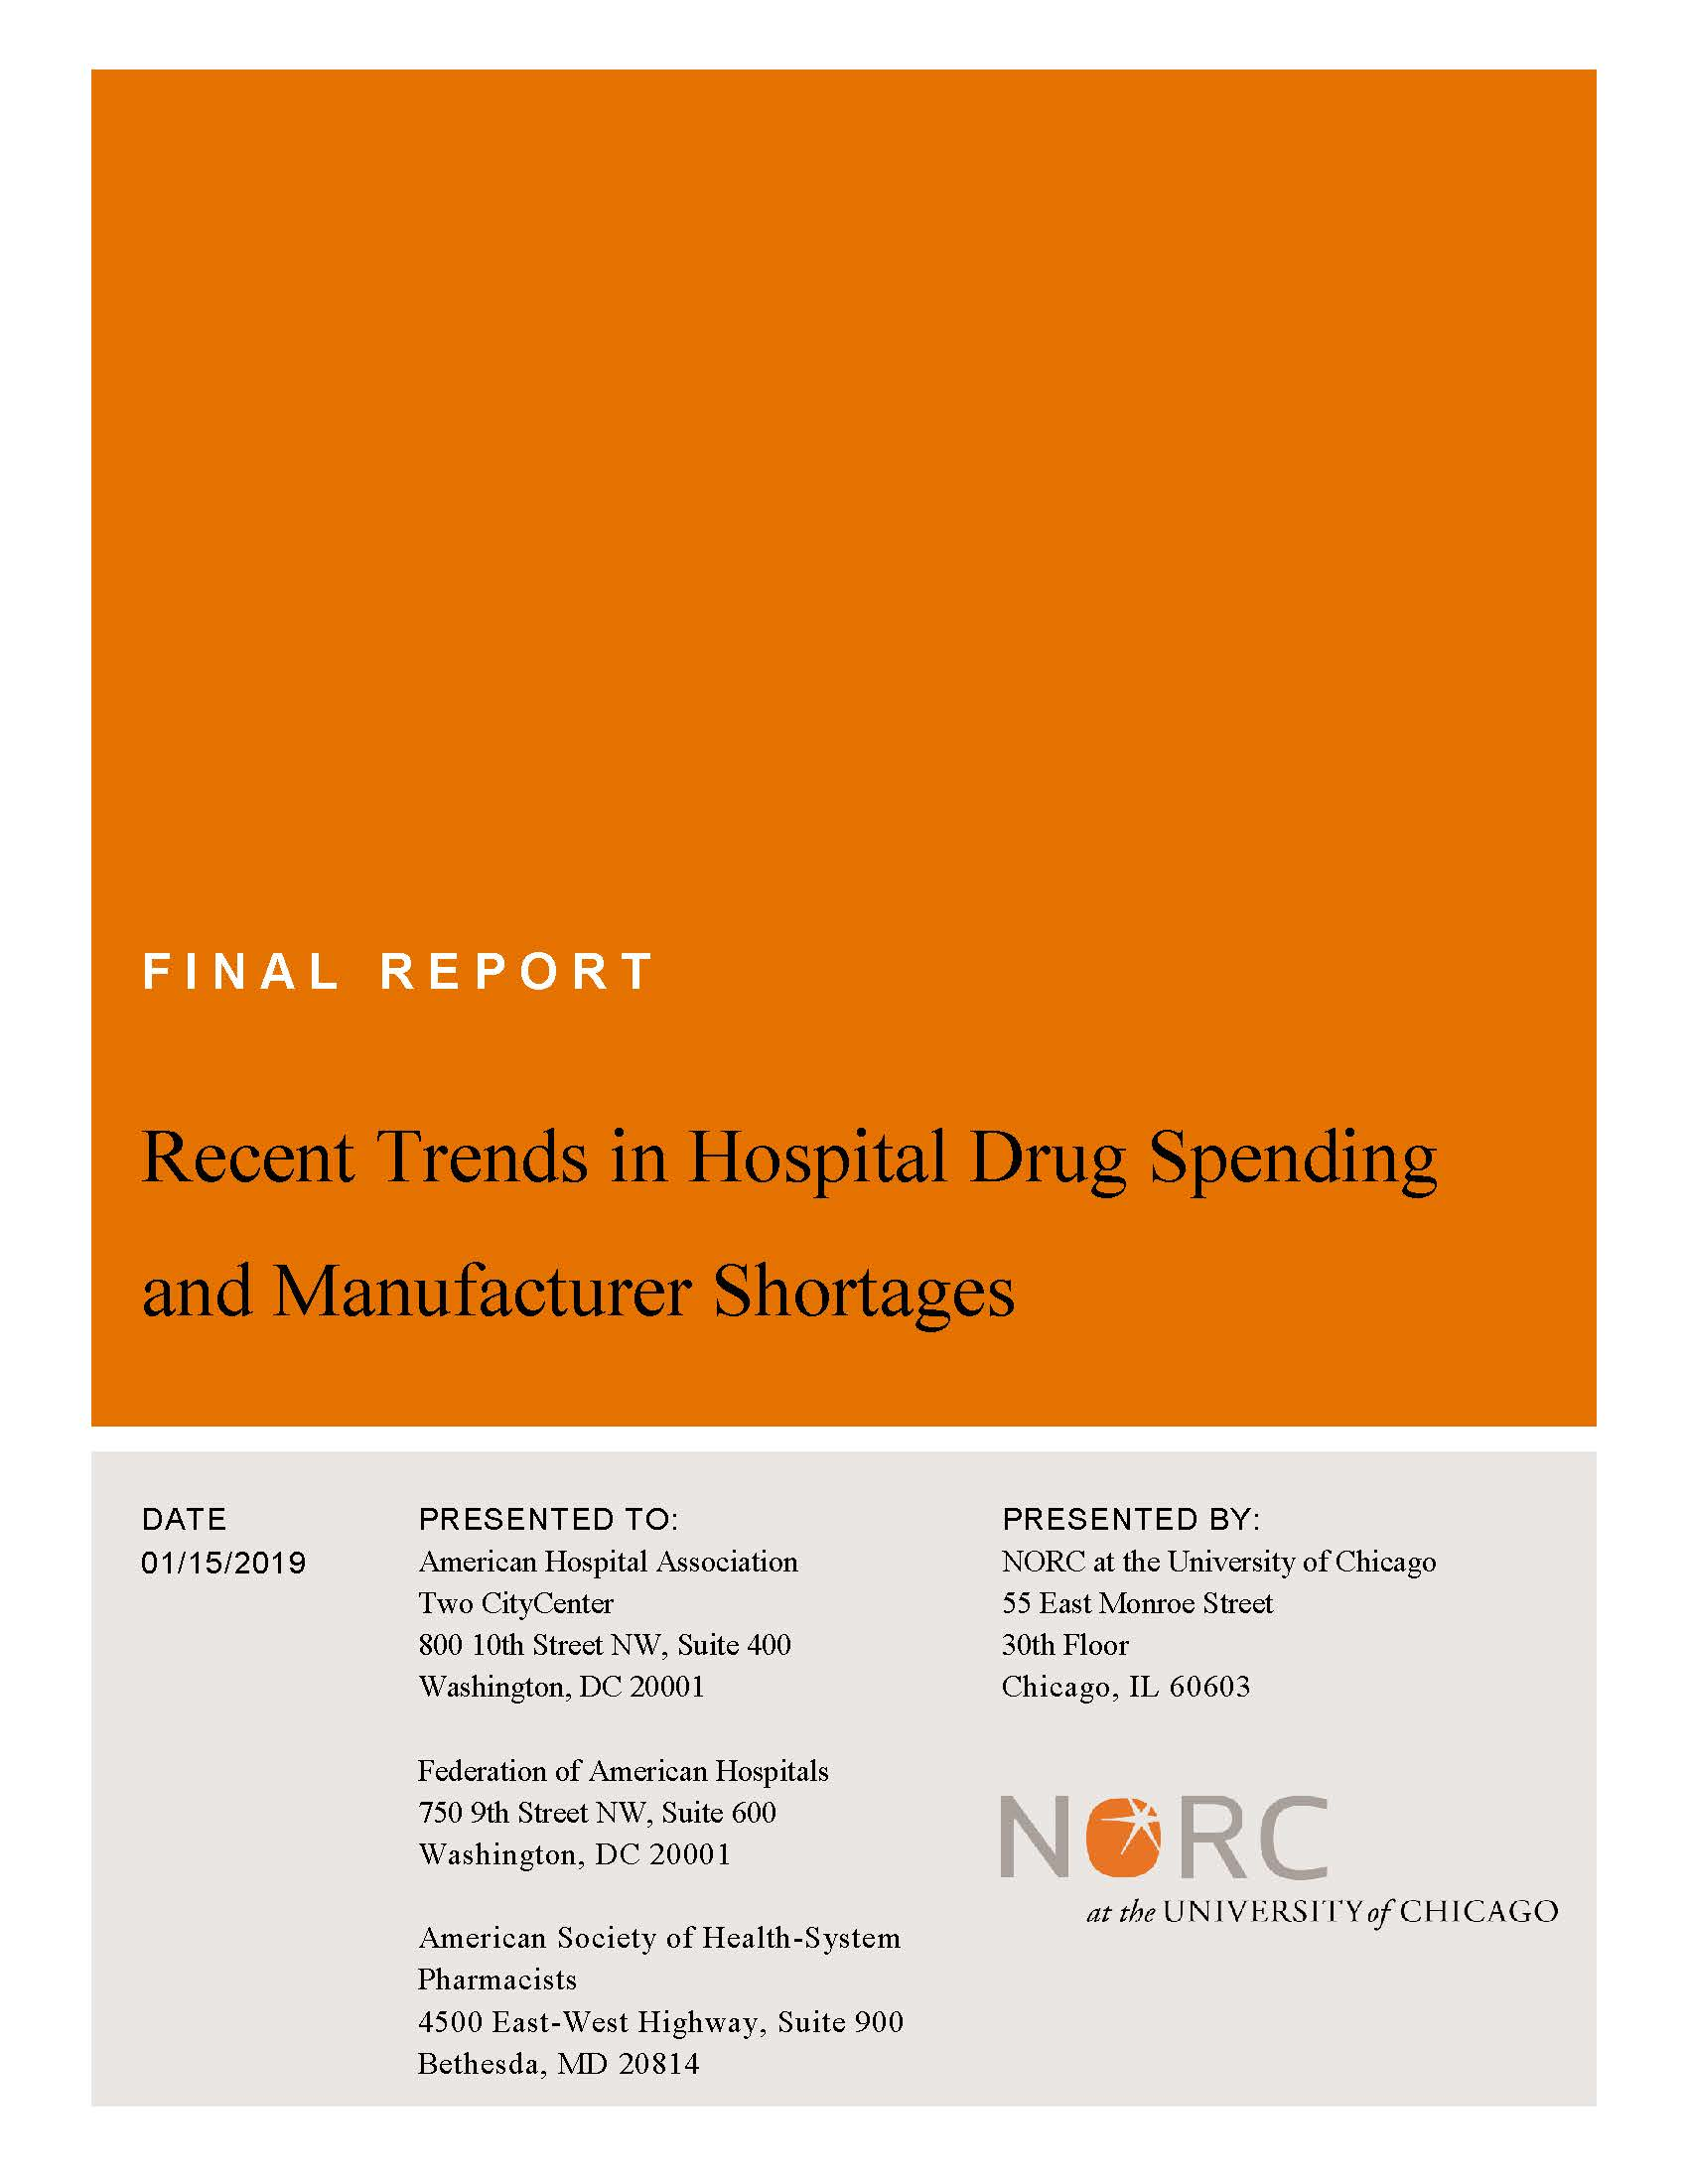 Recent Trends in Hospital Drug Spending and Manufacturer